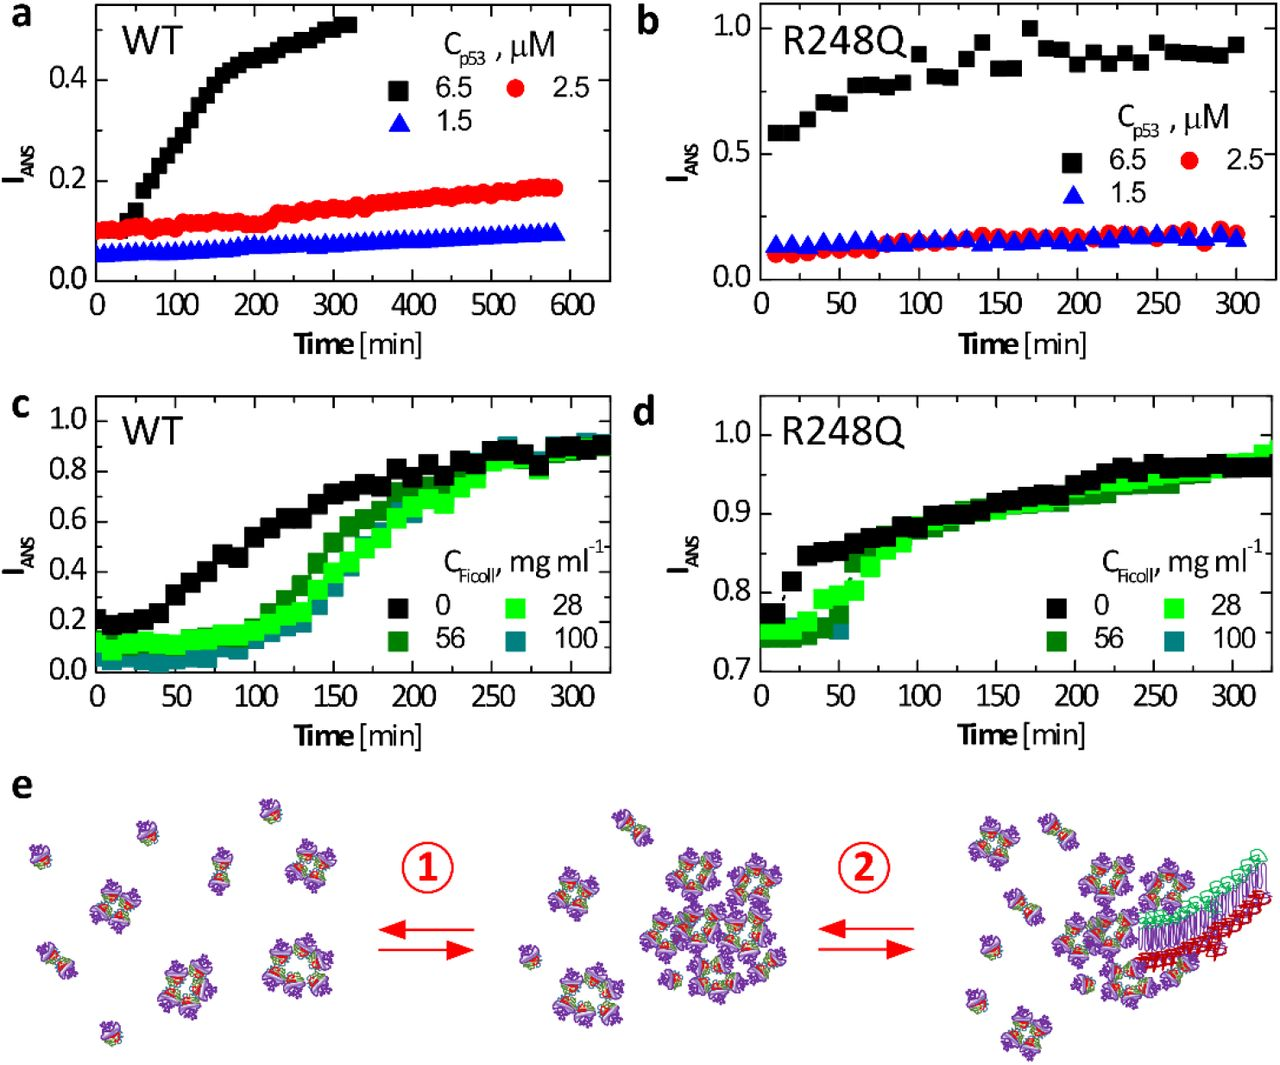 Fibrillization of wild type and p53 R248Q. a – d. Evolution of the intensity of fluorescence at 500 nm of 1-anilino-8-naphthalenesulfonate (ANS) in the presence of p53 at 37°C. ANS concentrations was 200 μM in all tests. a, b. At the listed concentrations of wild type, in a , and R248Q, in b , in the absence of Ficoll. c, d. At 6.5 μM of wild type, in c , and R248Q, in d , and in the presence of varying concentrations of Ficoll. e. Schematic of two-step nucleation of fibrils. Step 1. Mesoscopic p53-rich clusters form from misassembled p53 oligomers and native tetramers. Step 2. Fibrils nucleate within the mesoscopic clusters. Fibril growth proceeds classically, via sequential association of p53 monomers from the solution.